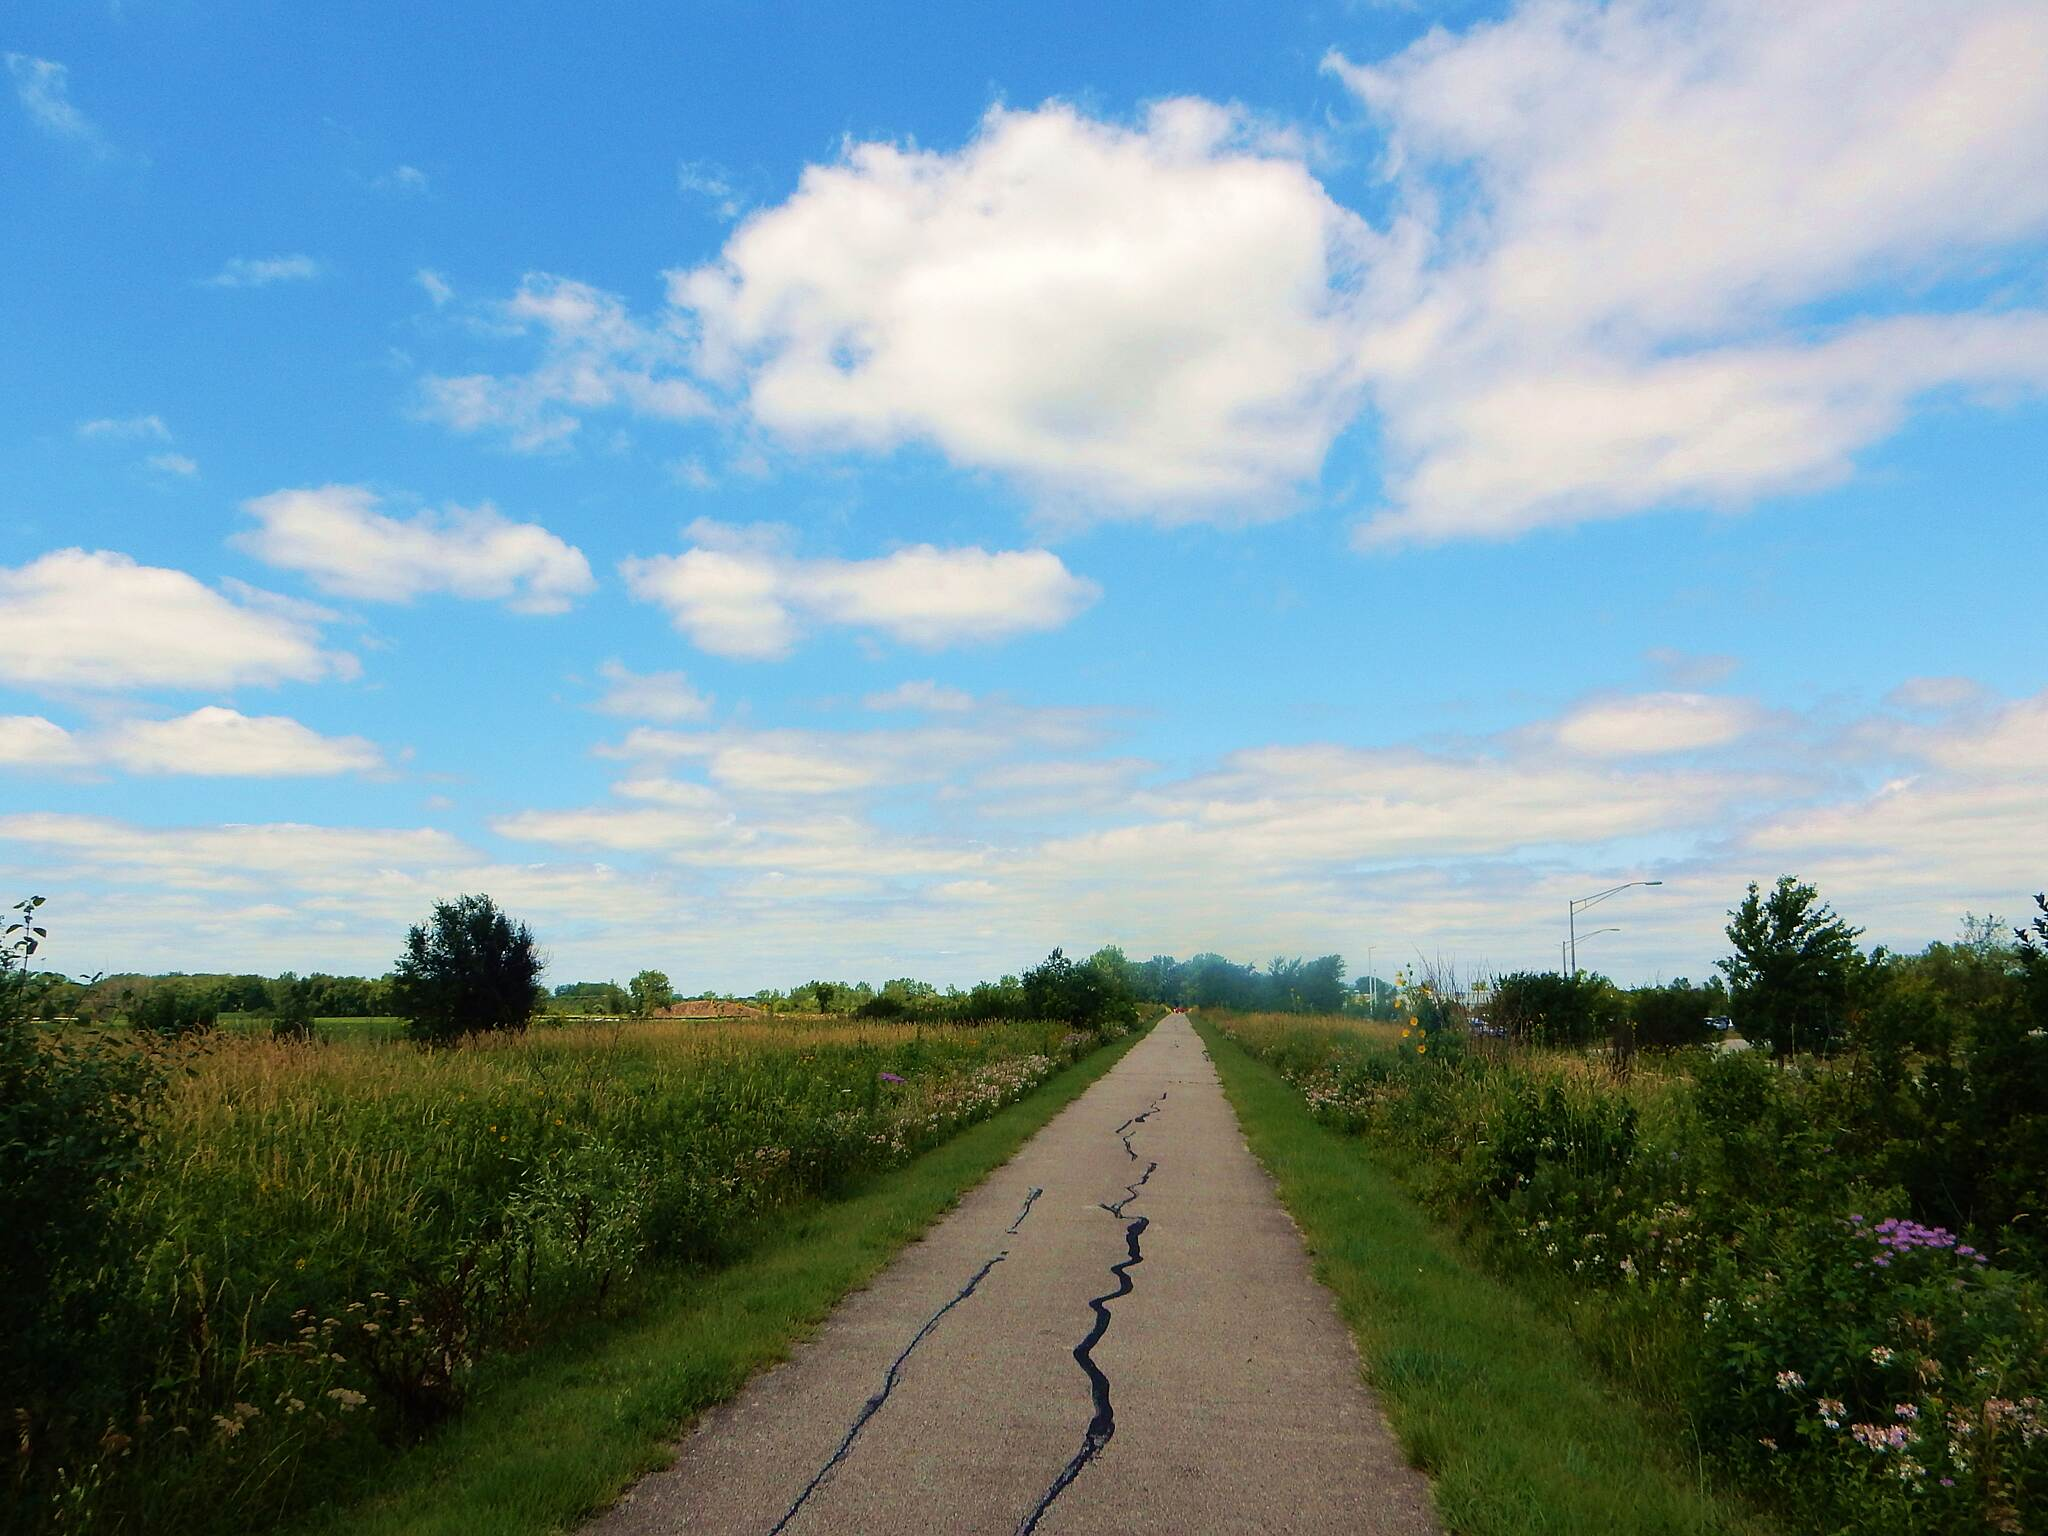 Old Plank Road Trail Straight as a plank. Very straight, smooth, paved trail. Taken 7-14-17.